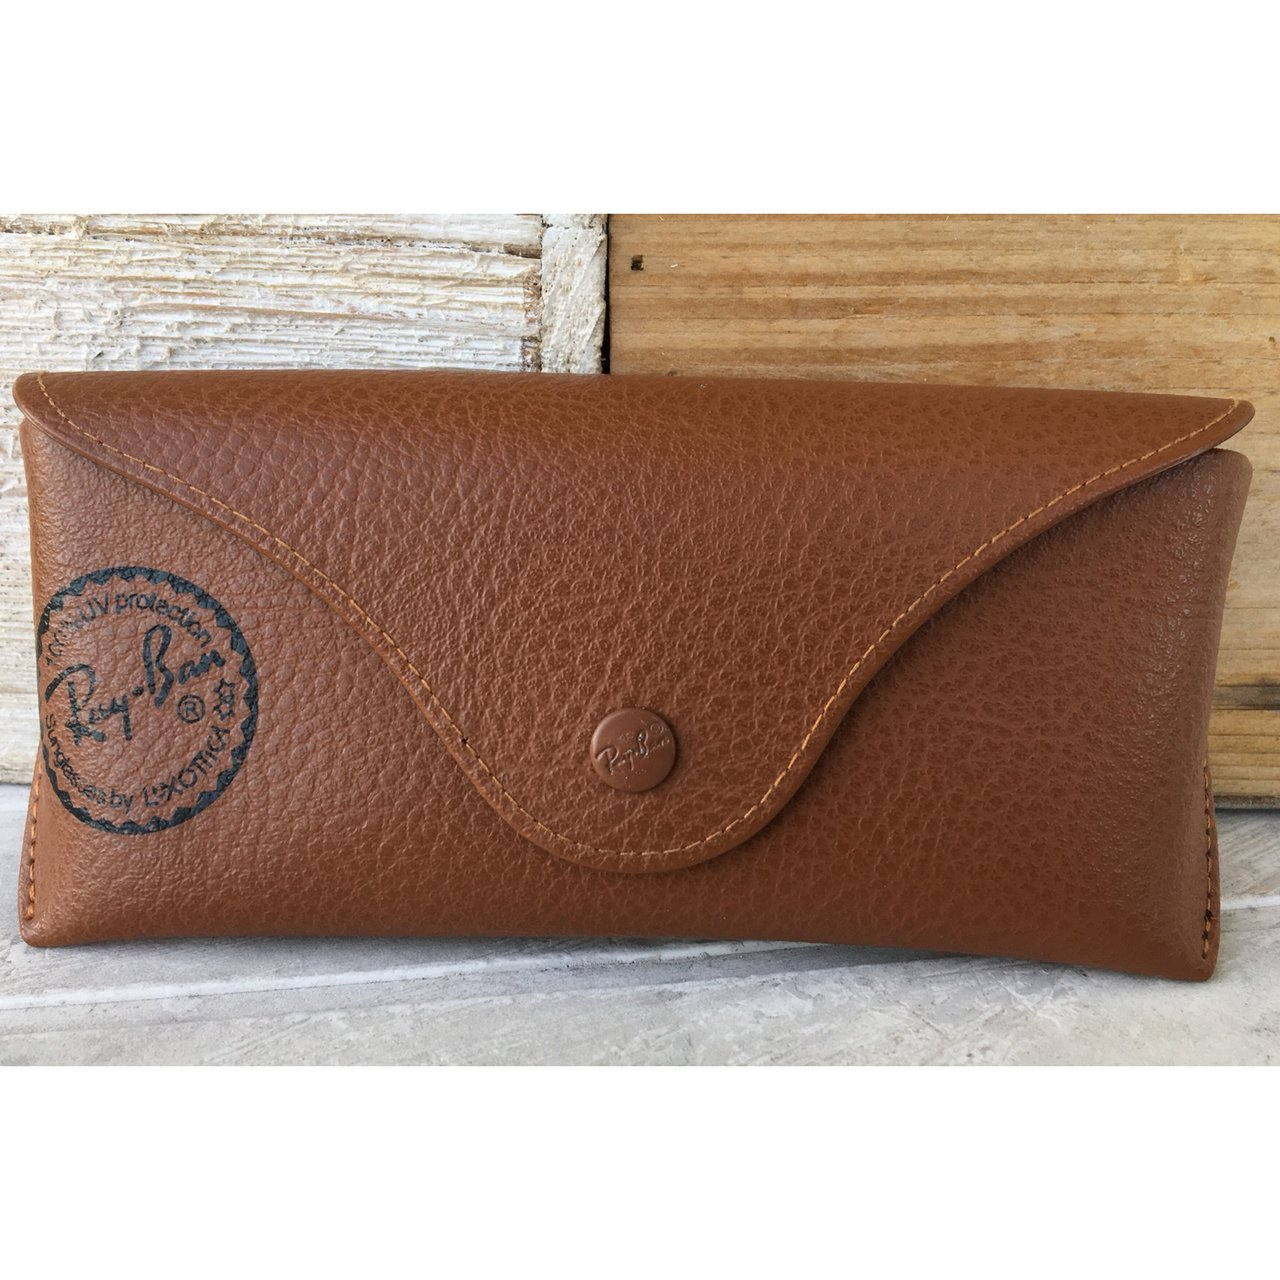 24cb688d84 Ray-Ban Leather Brown Tan Case 😎 Standard glasses case NEW - Depop